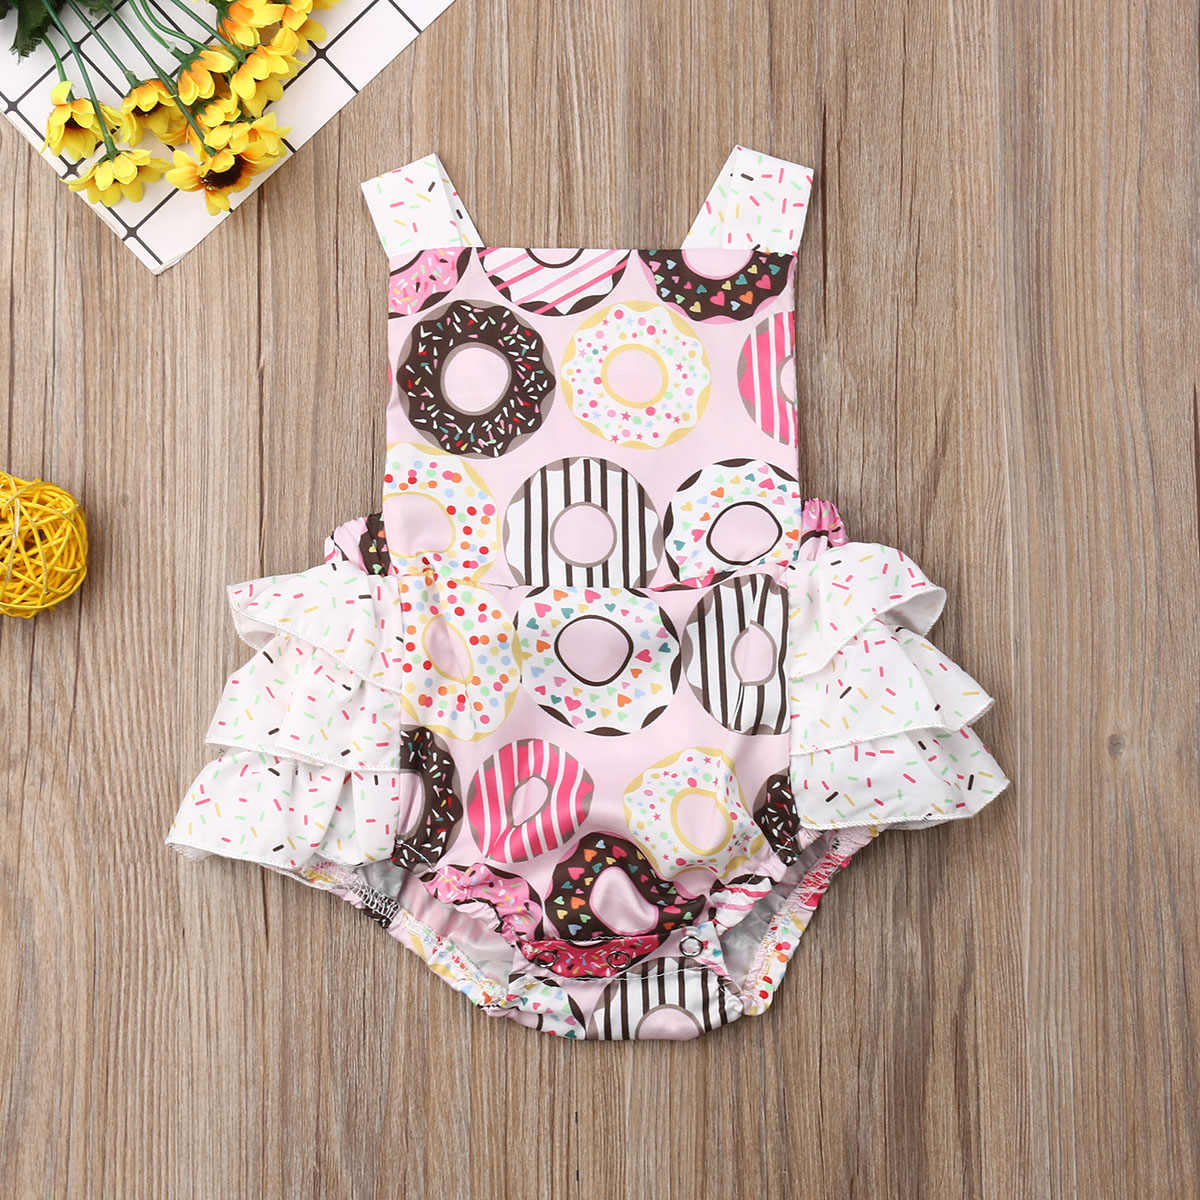 Pudcoco Newborn Baby Girl Clothes Sleeveless Doughnut Print Ruffle Romper Jumpsuit One-Piece Outfit Sunsuit Clothes 0-24M